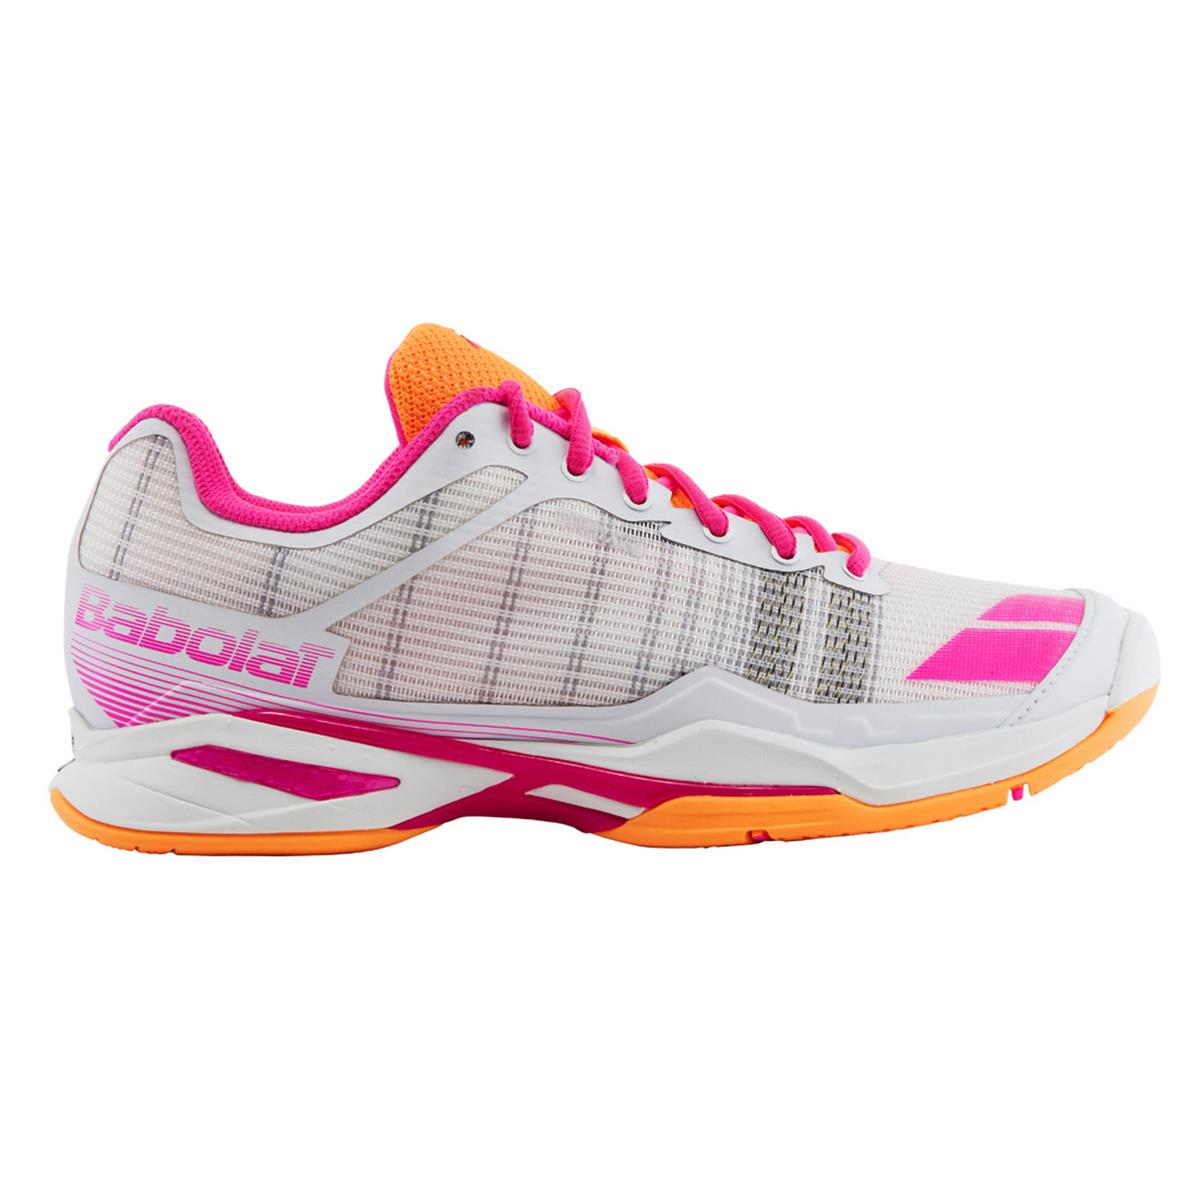 Head Tennis Shoes Sports Direct